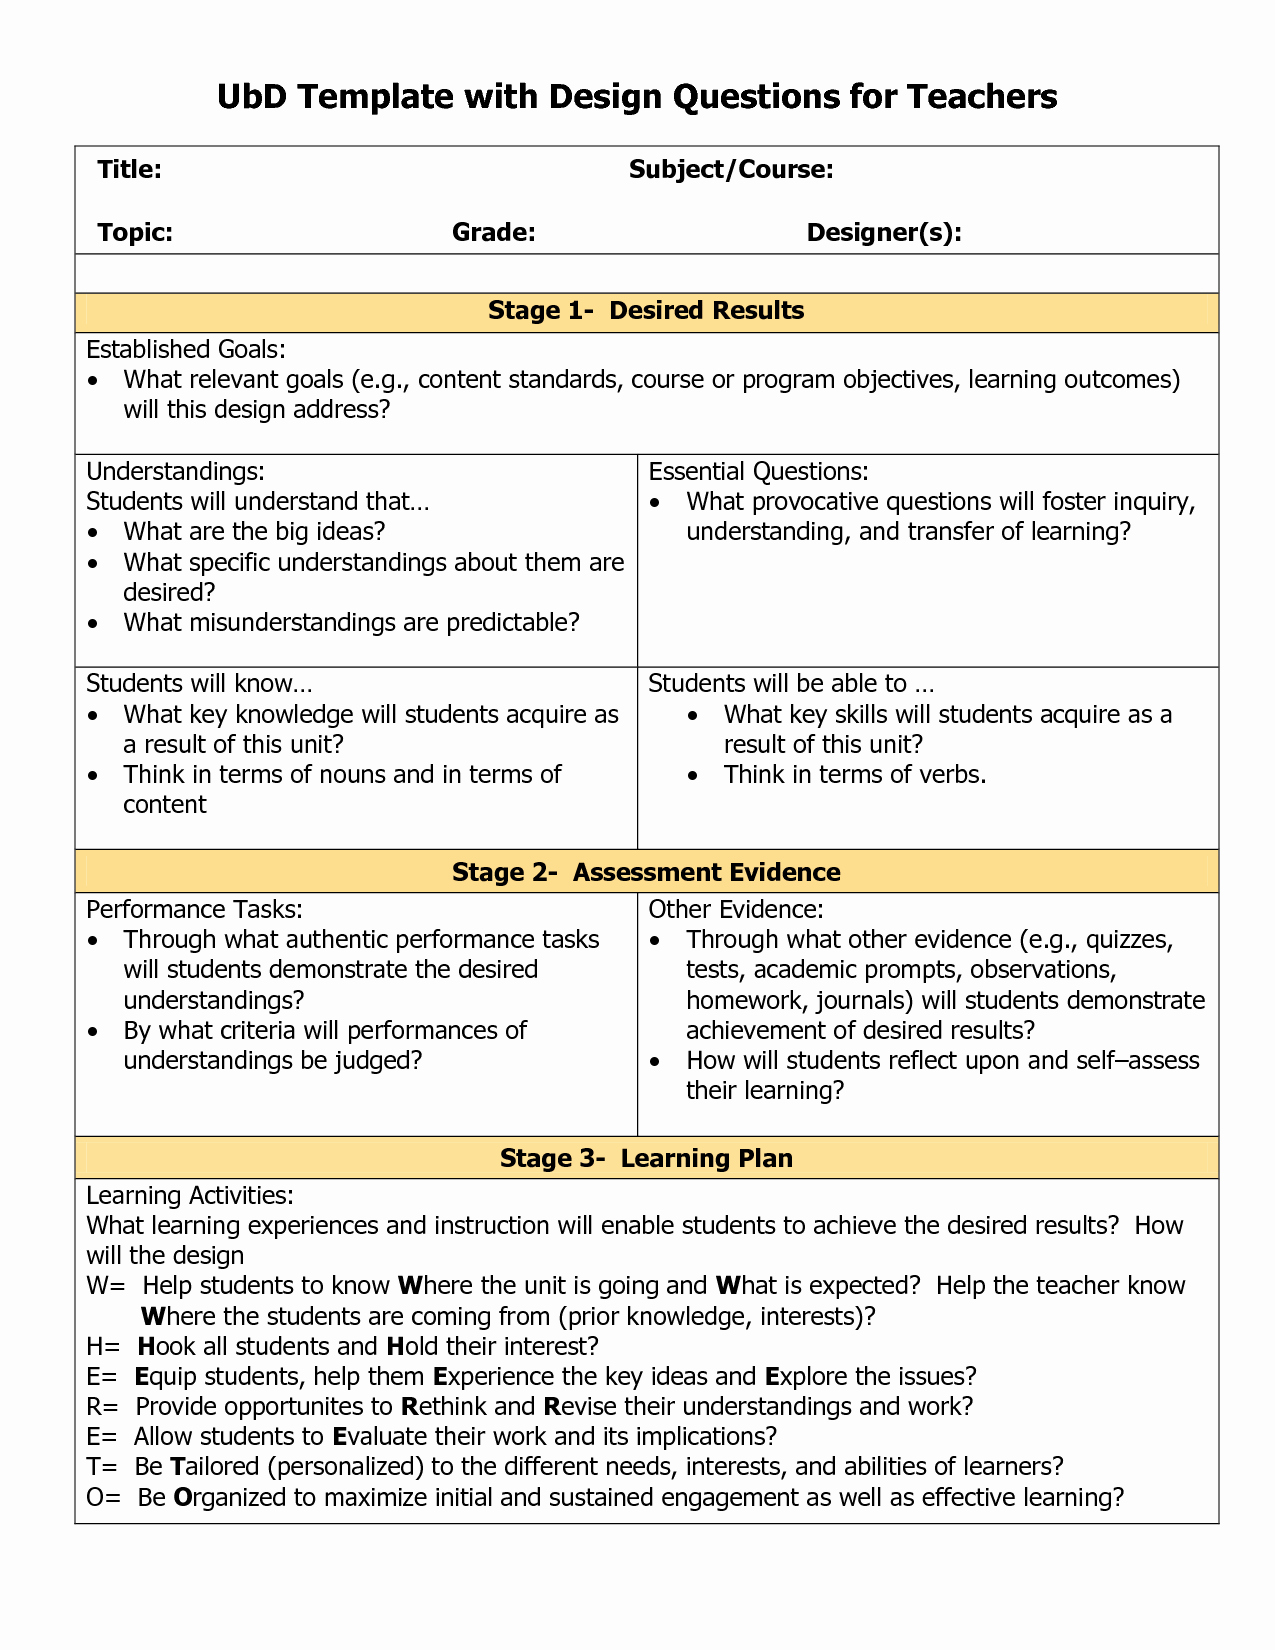 Unit Lesson Plans Template Elegant Blank Ubd Template Things for the Classroom